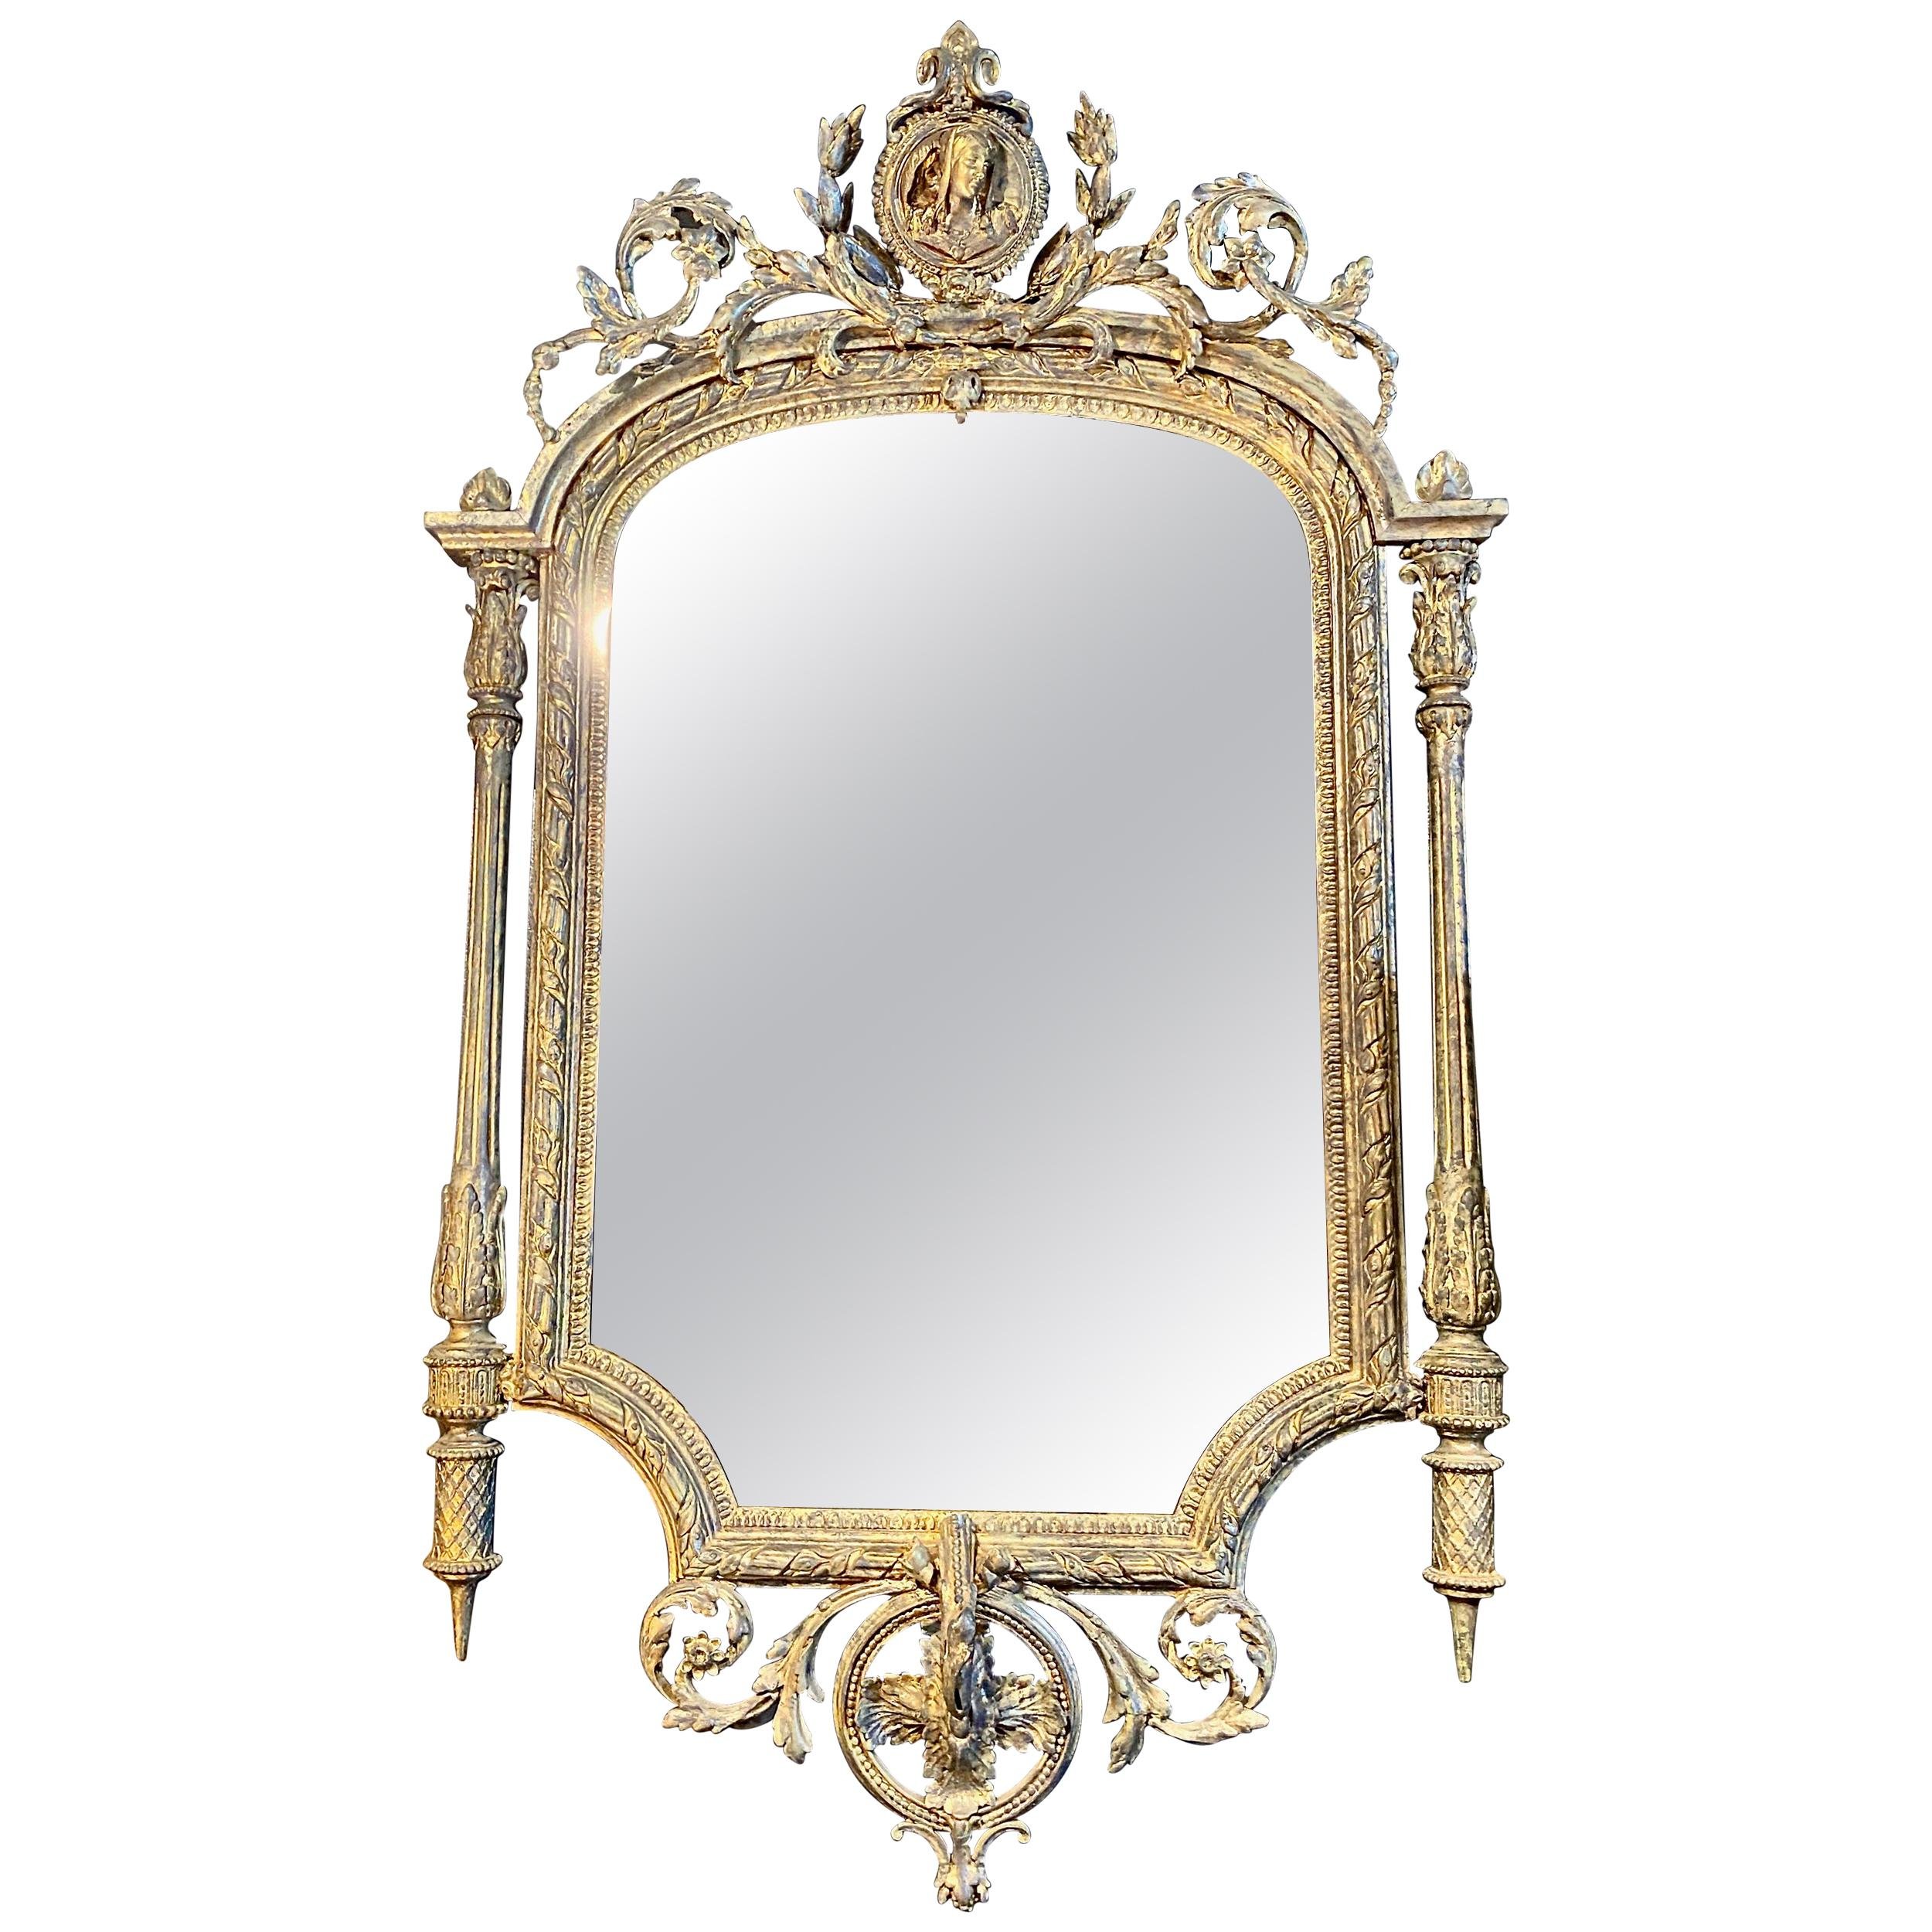 French Neoclassical 19th Century Giltwood Mirror